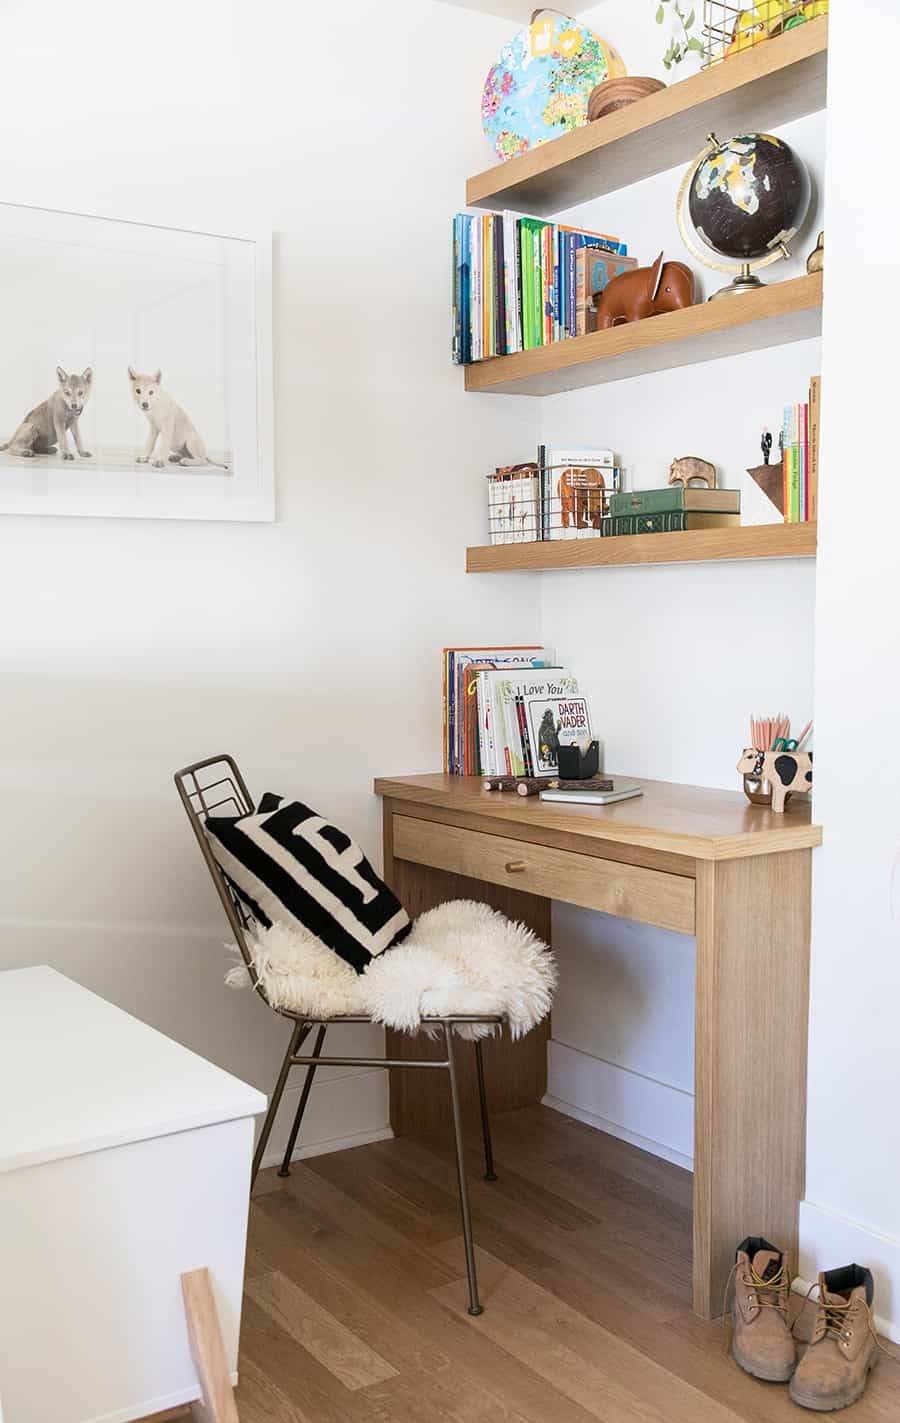 built in desk with shelves filled with books.